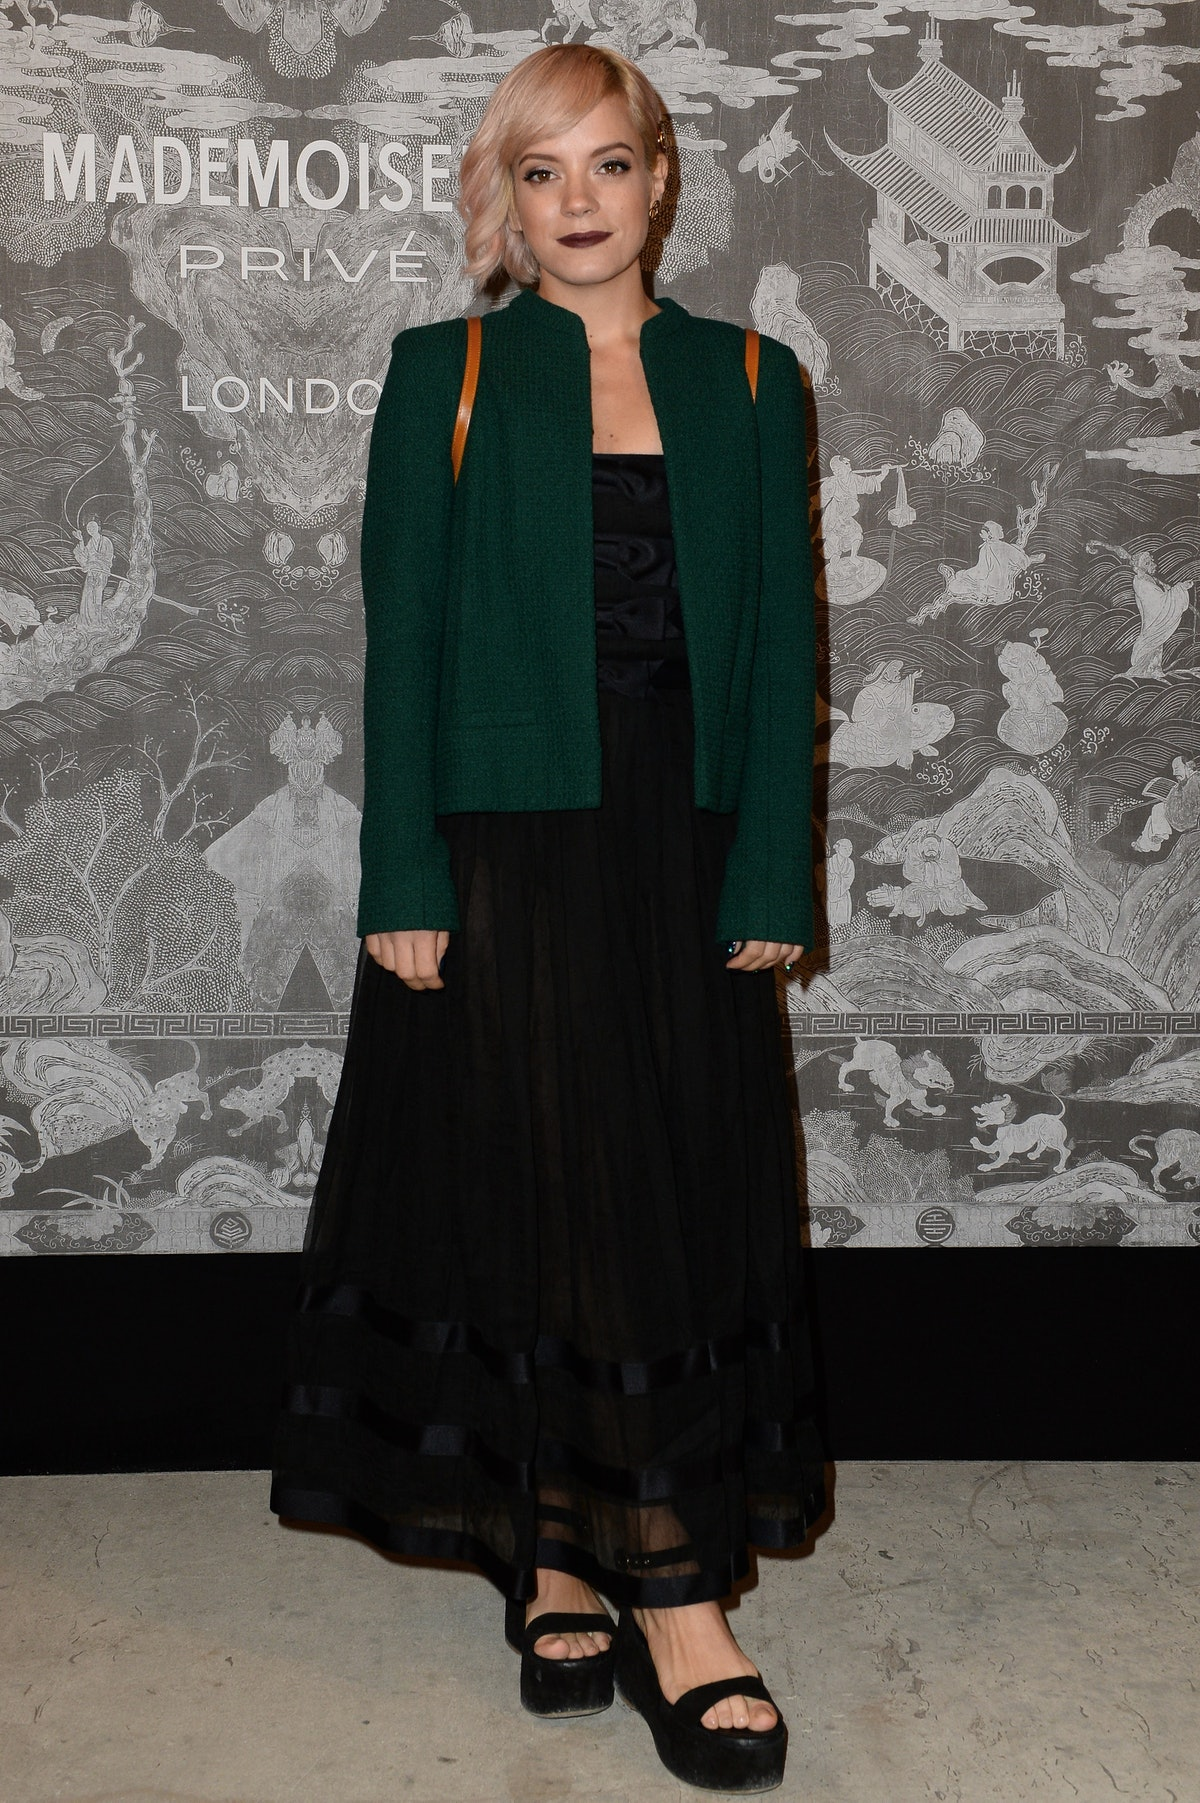 Mademoiselle Privé_Saatchi Gallery London_Photocall pictures by Dave Benett_Lily Allen